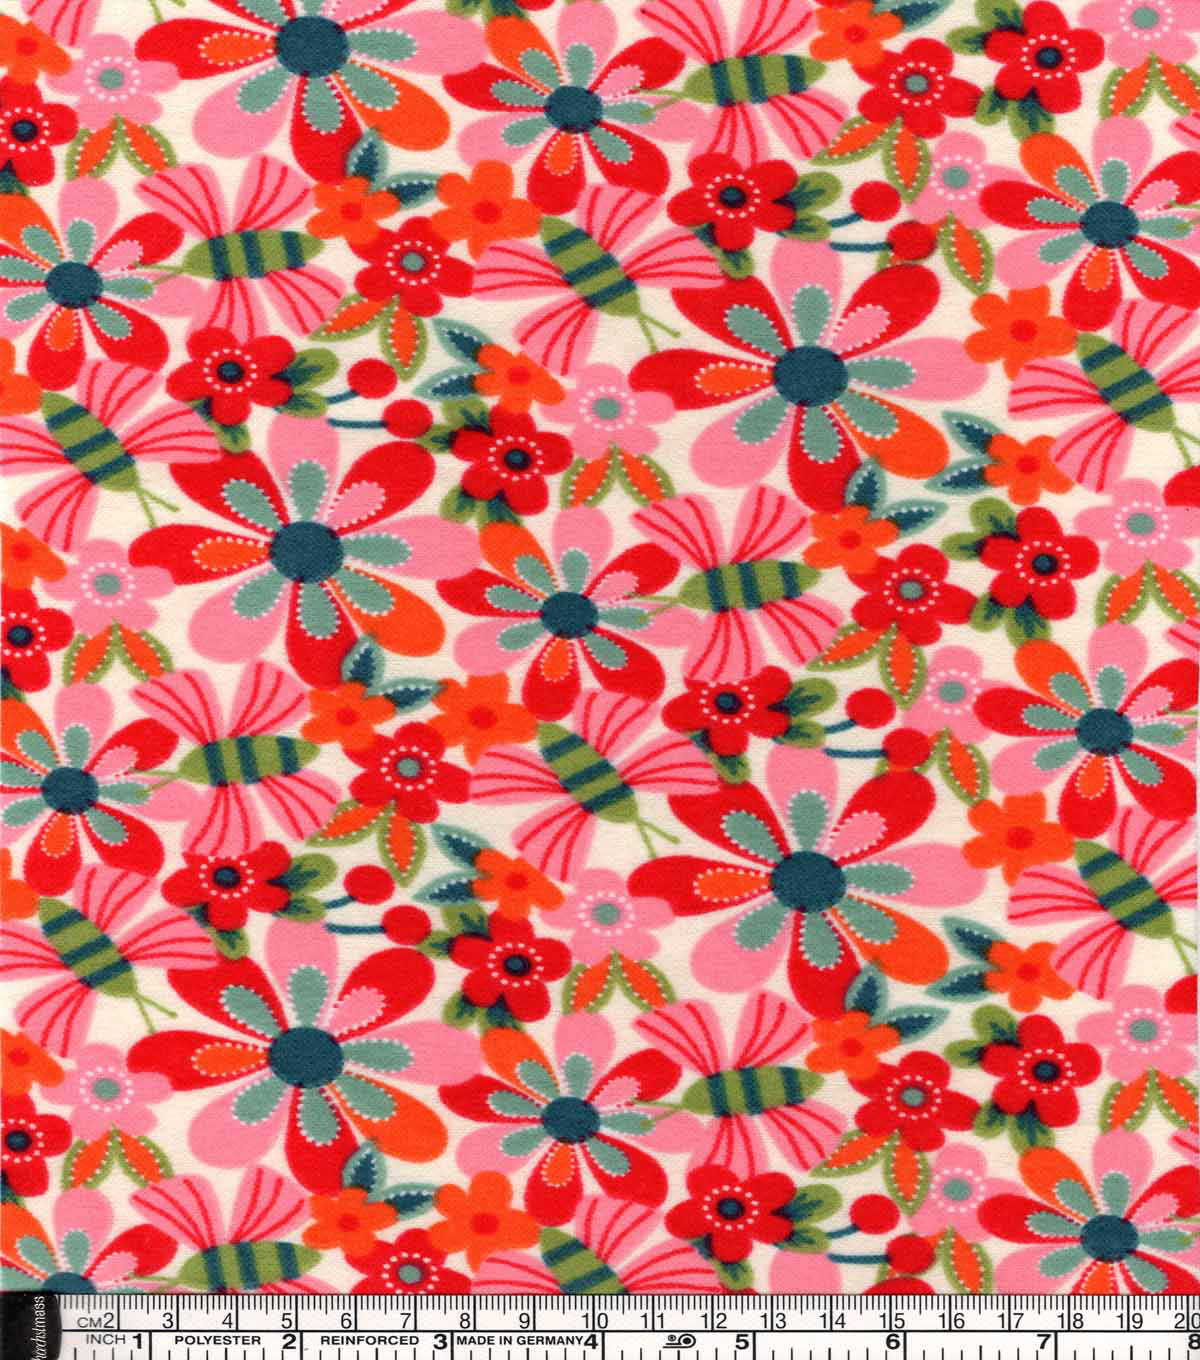 Snuggle Flannel Fabric -Bright Butterflies And Floral